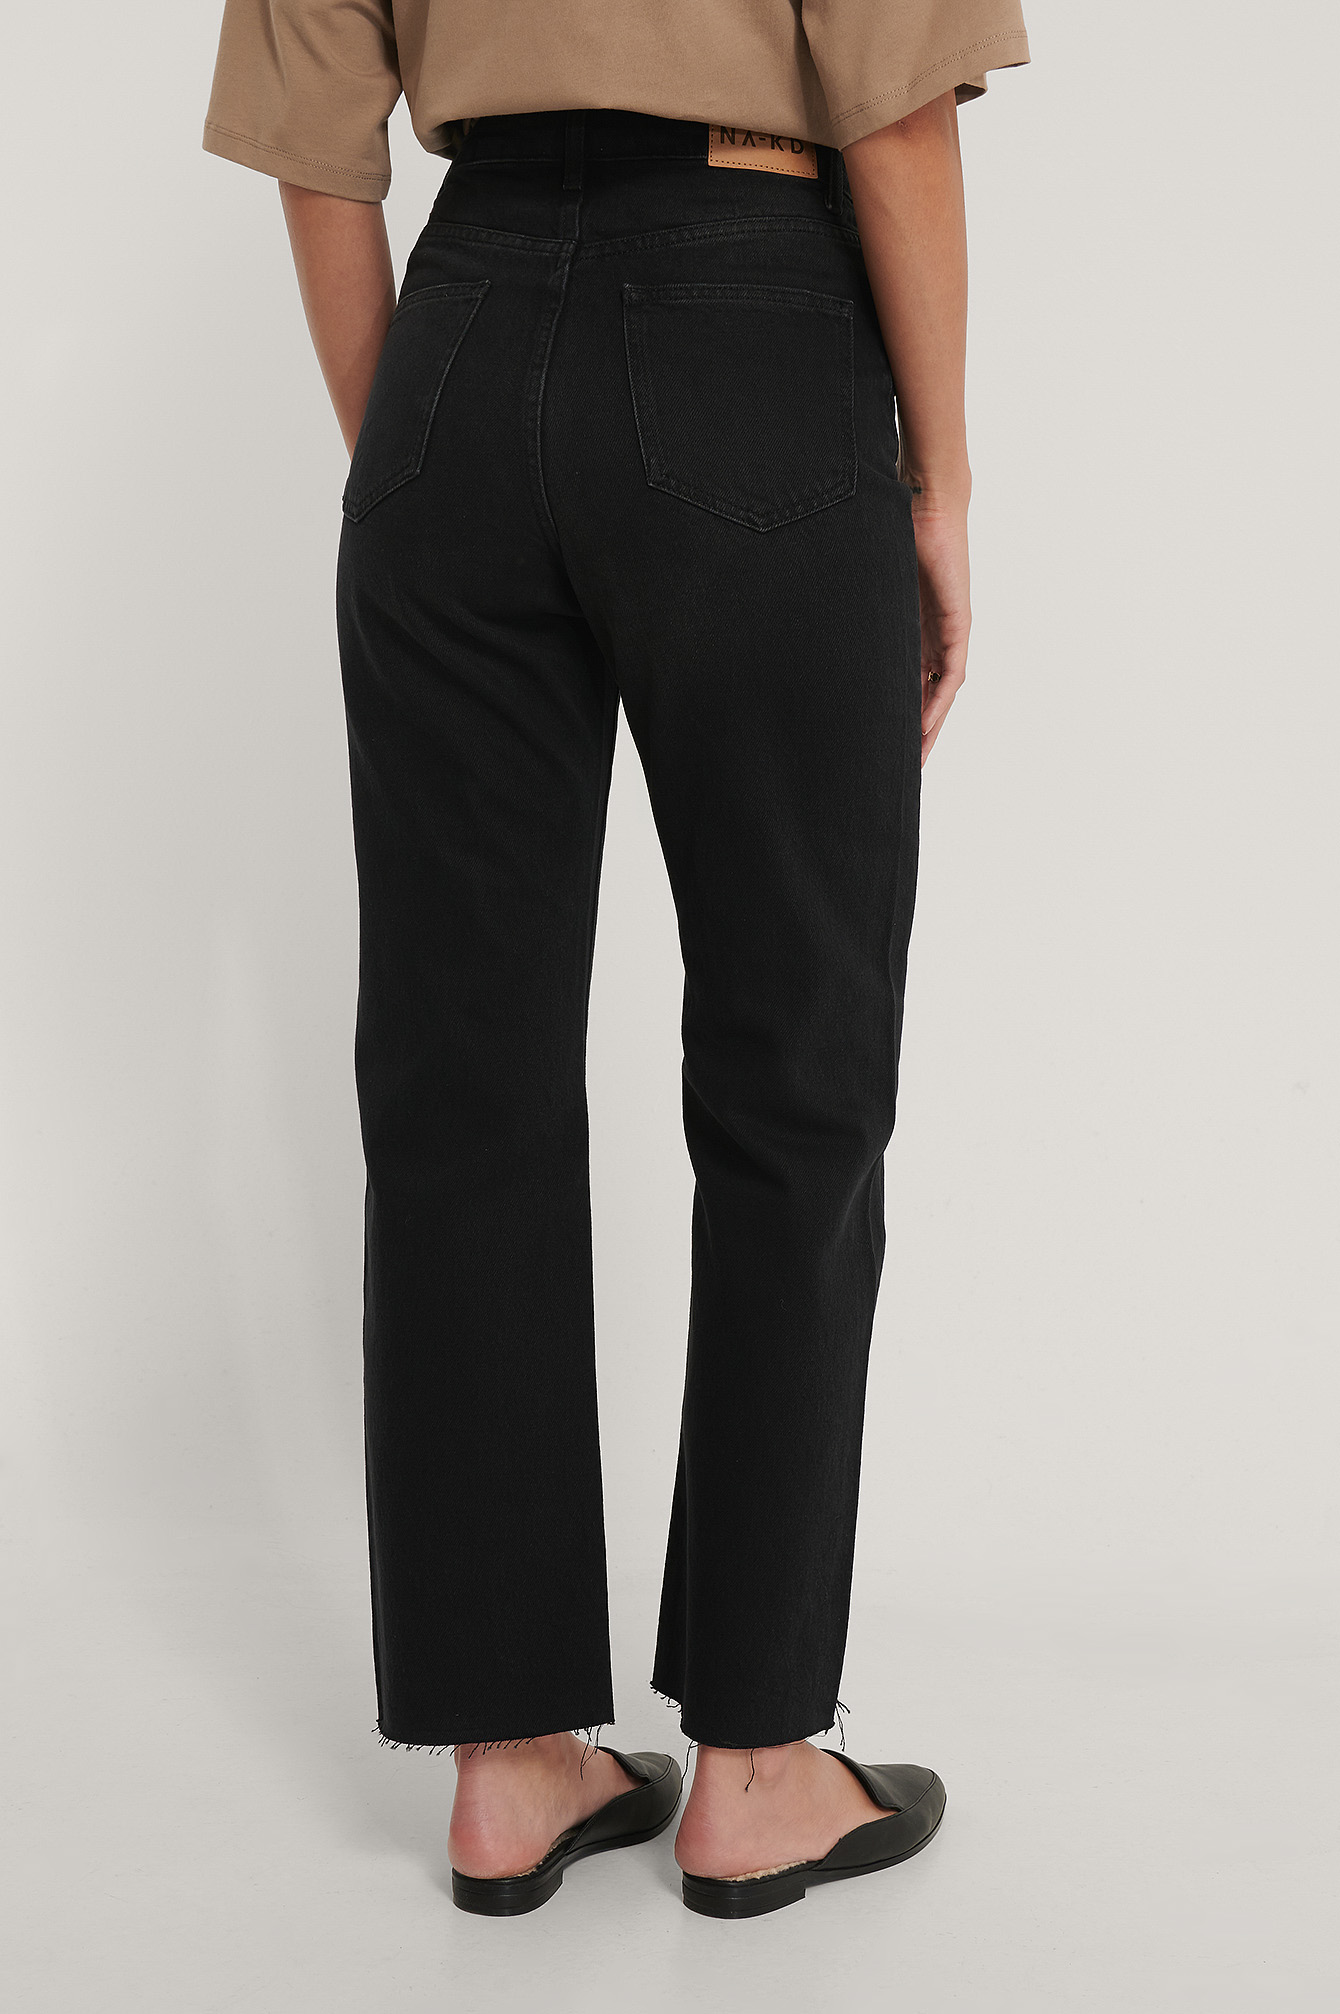 Washed Black Straight High Waist Raw Hem Jeans